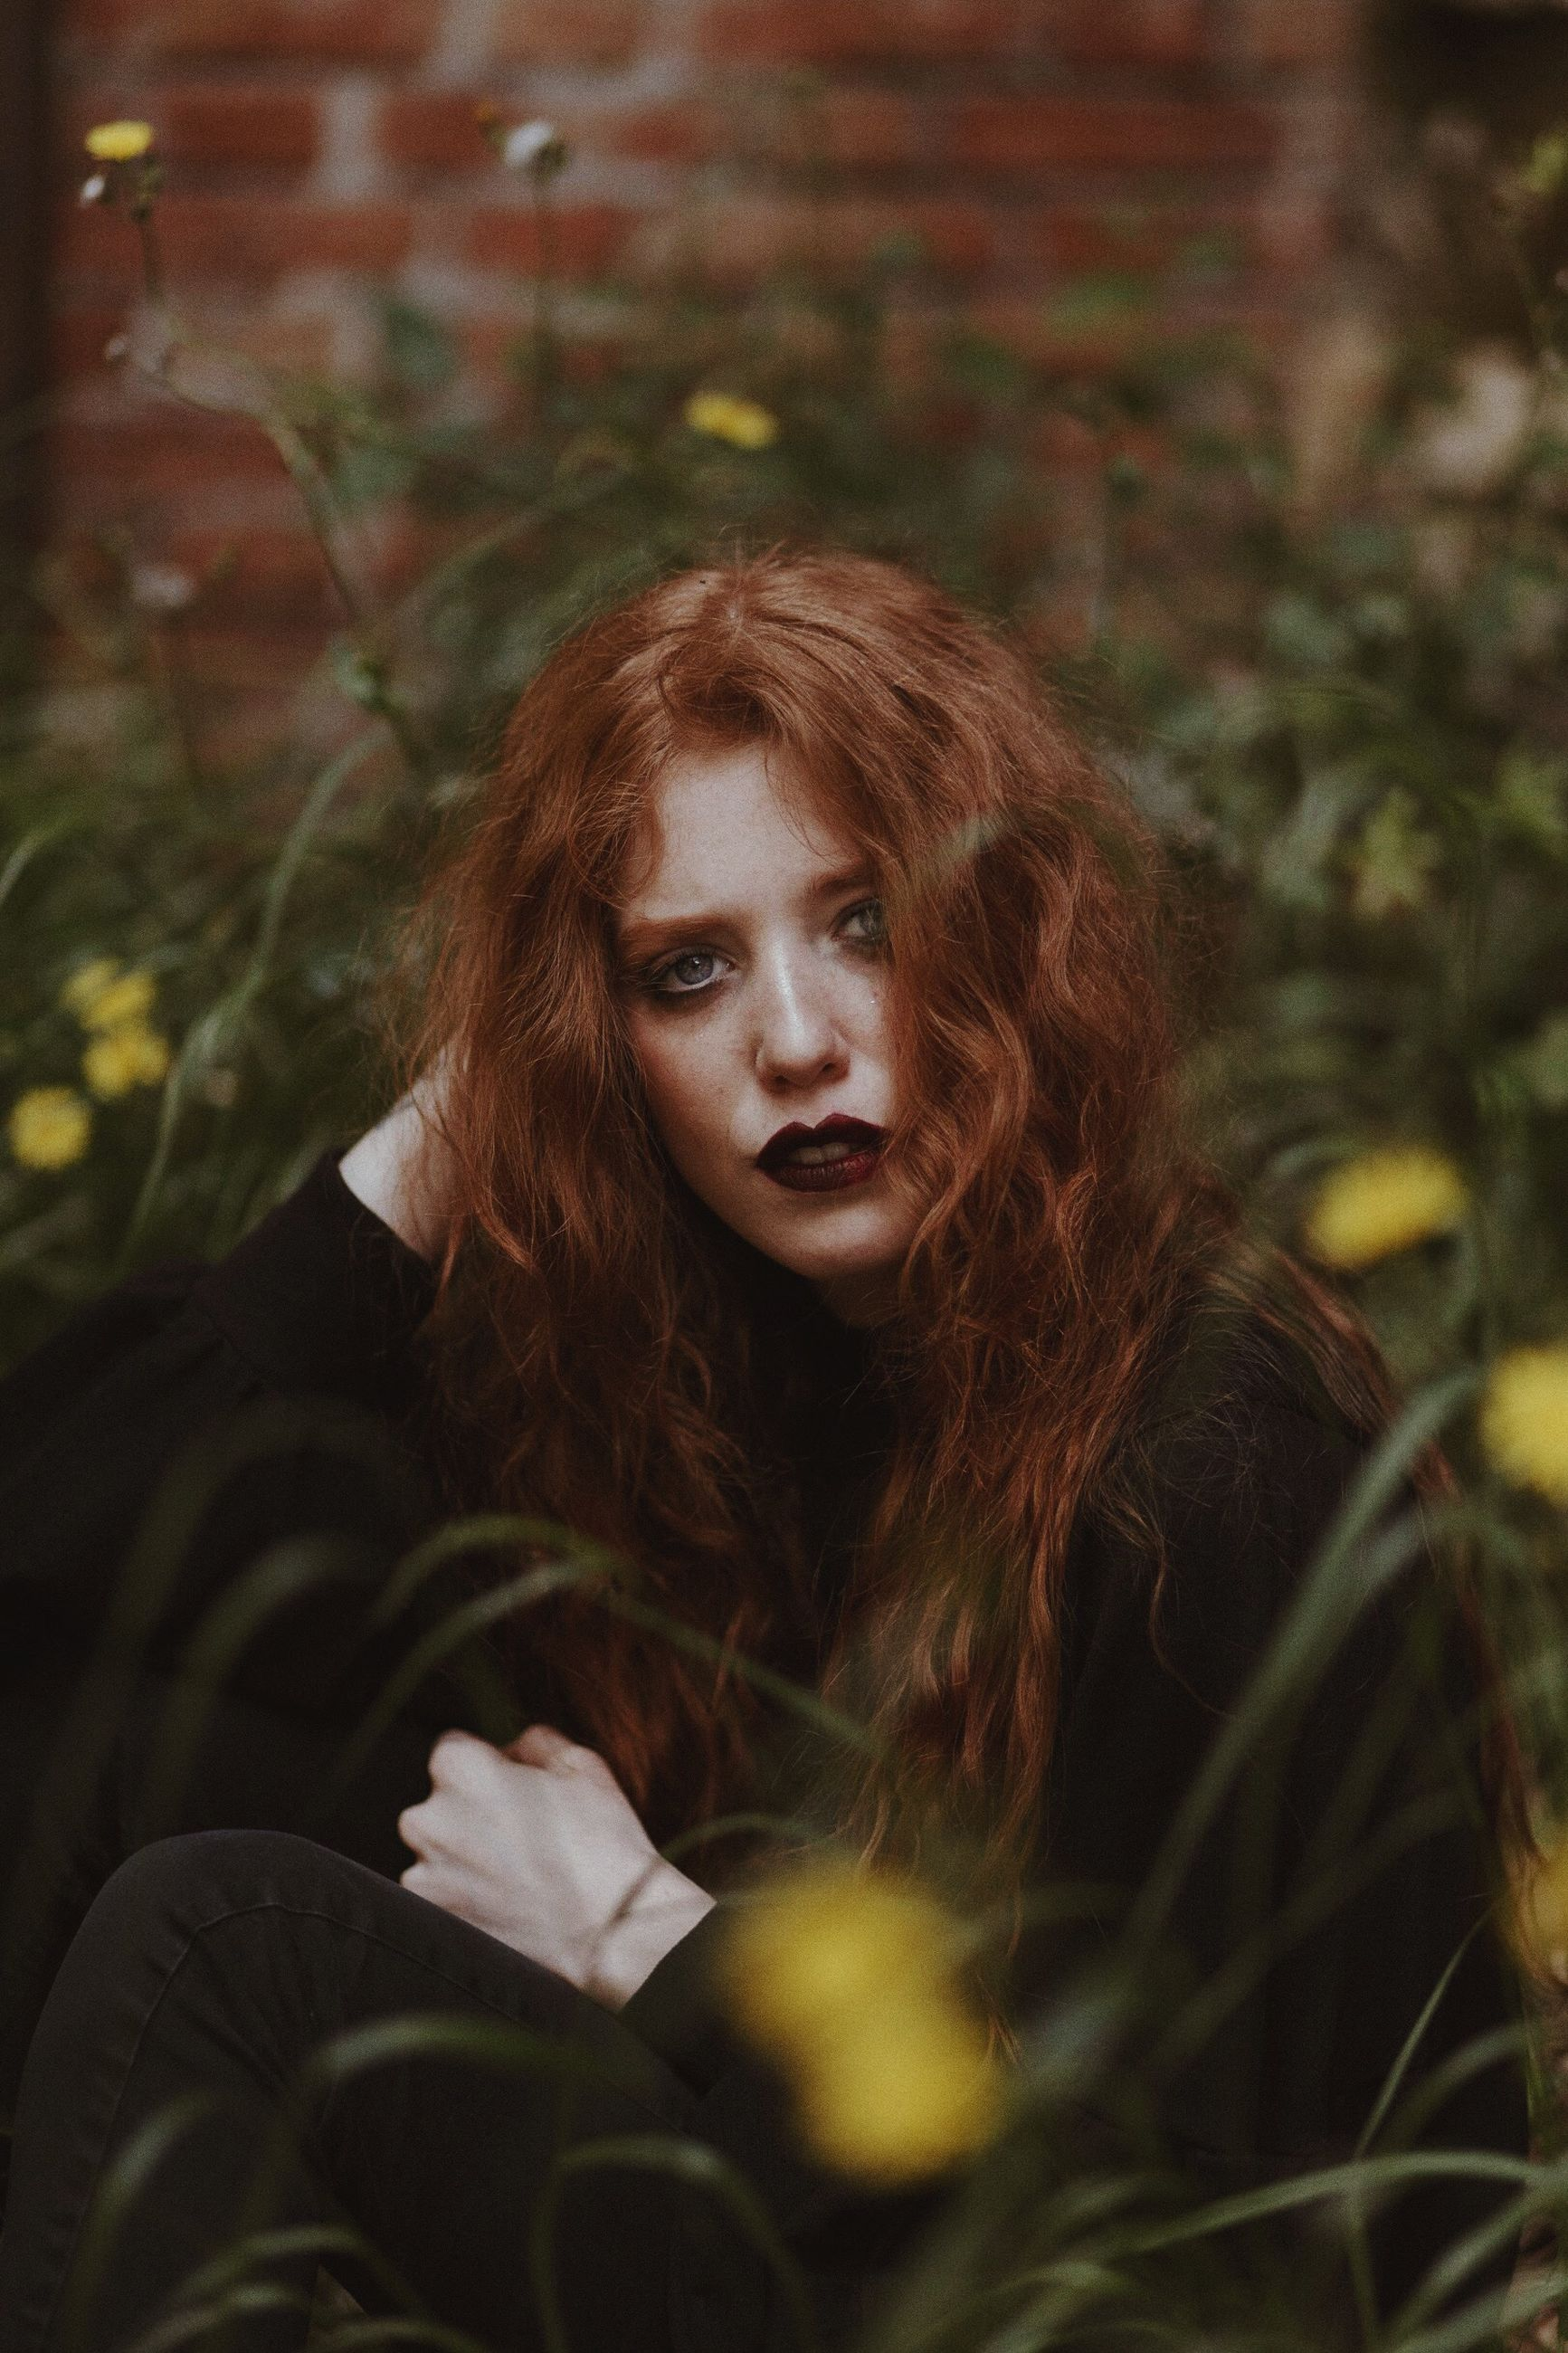 one person, young adult, portrait, young women, real people, leisure activity, looking at camera, lifestyles, front view, redhead, beauty, adult, beautiful woman, land, women, plant, selective focus, looking, hairstyle, hair, outdoors, contemplation